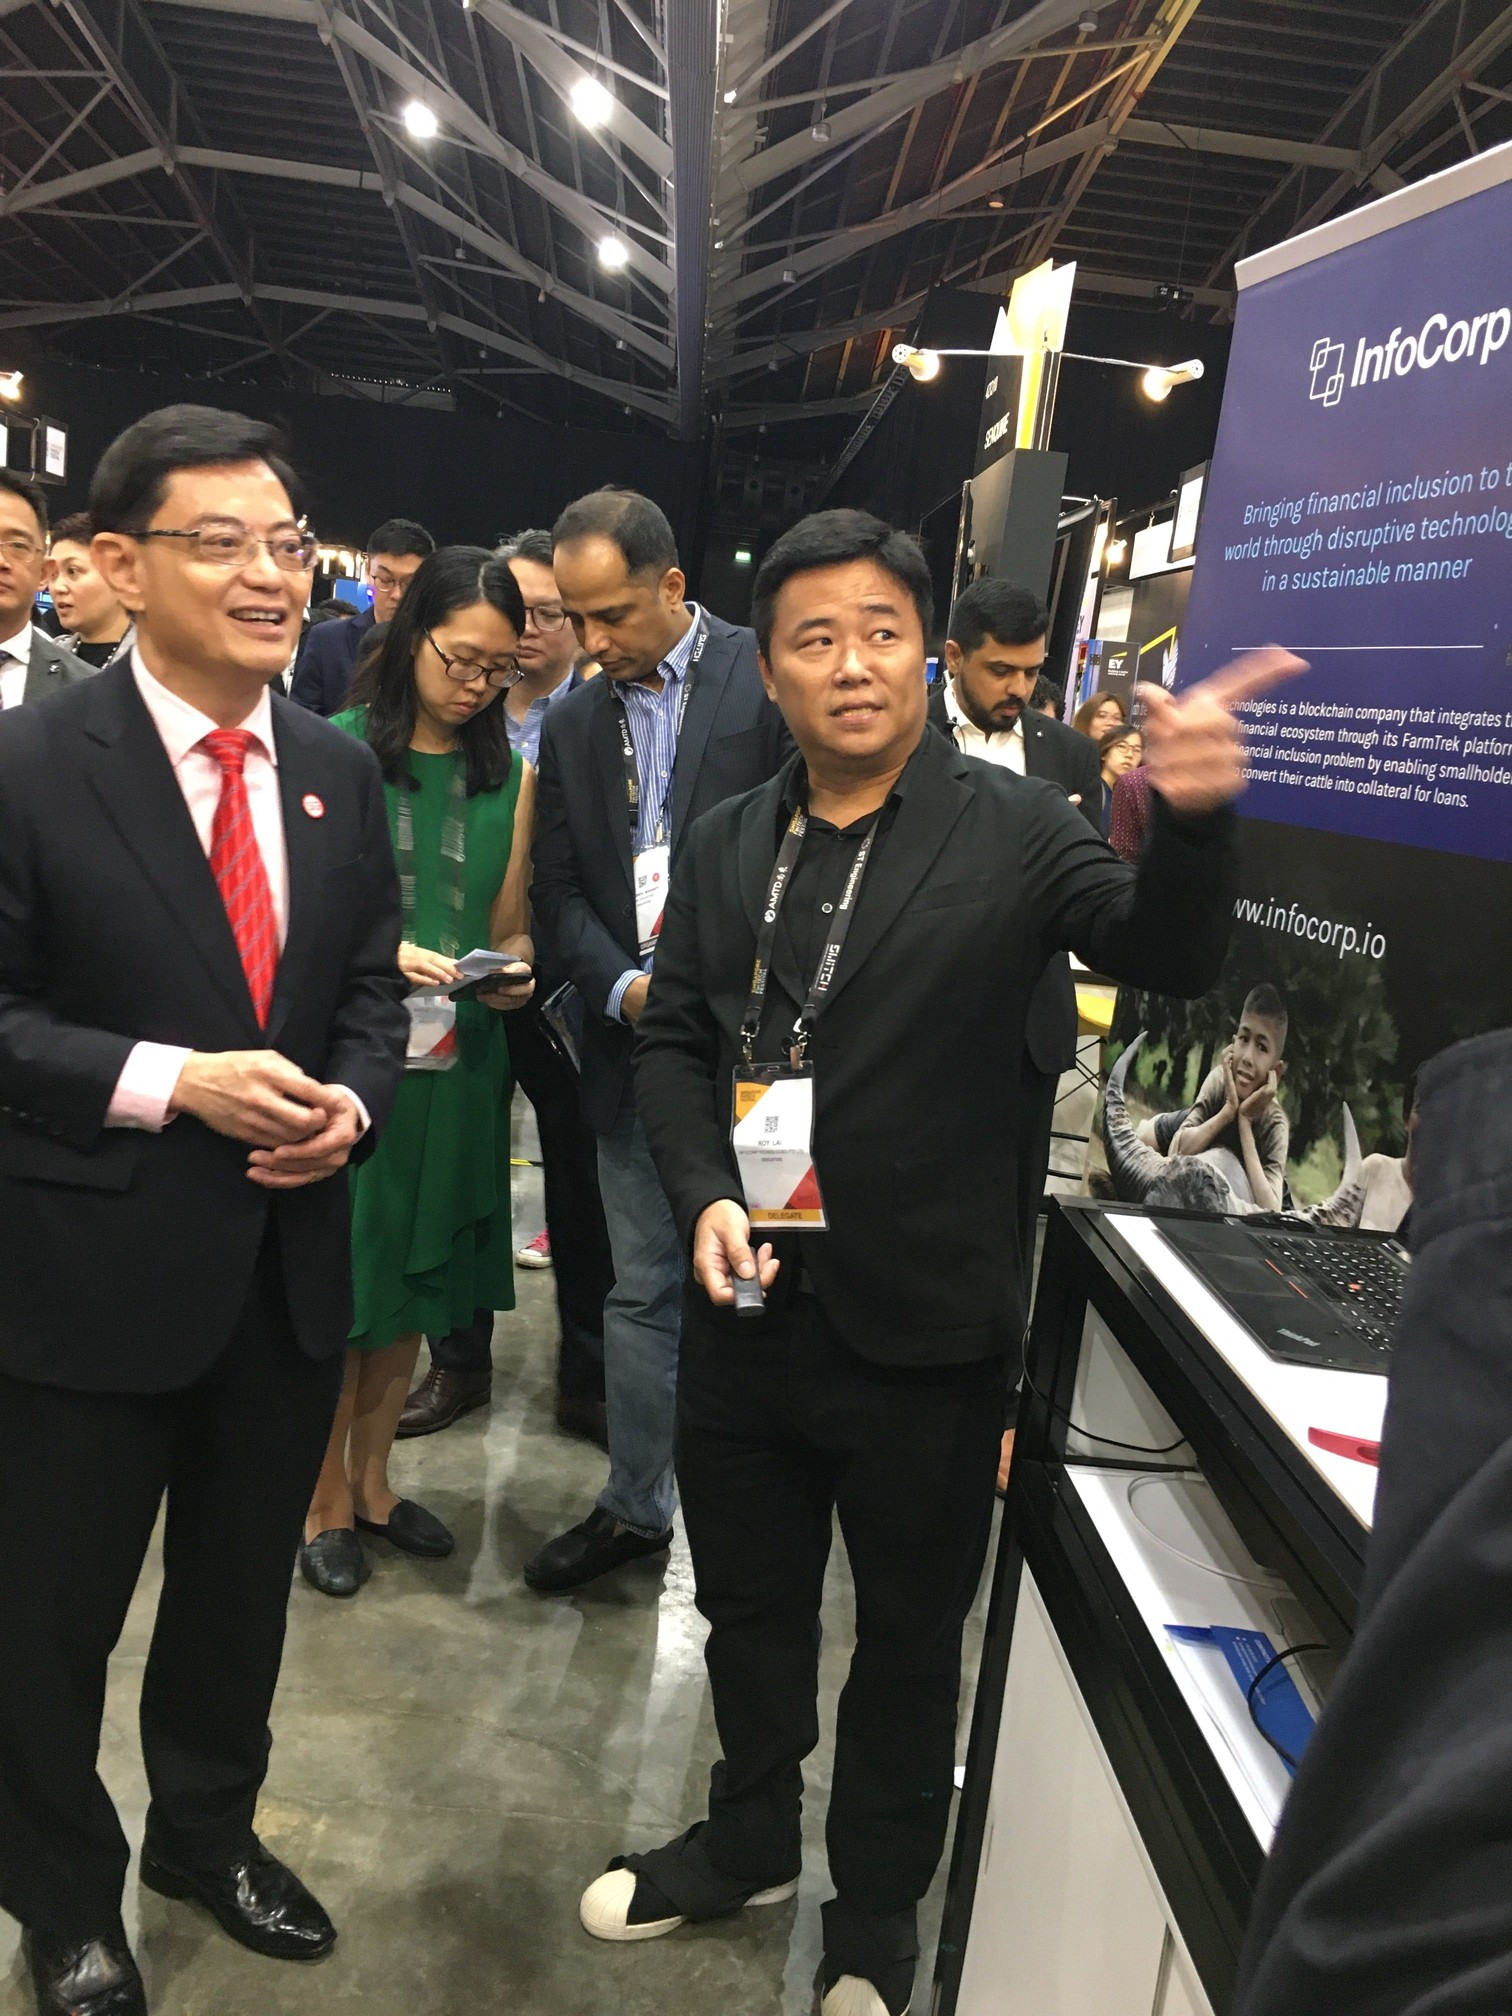 Deputy Prime Minister Heng Swee Keat was impressed that a Singaporean company can create a solution for agriculture sector